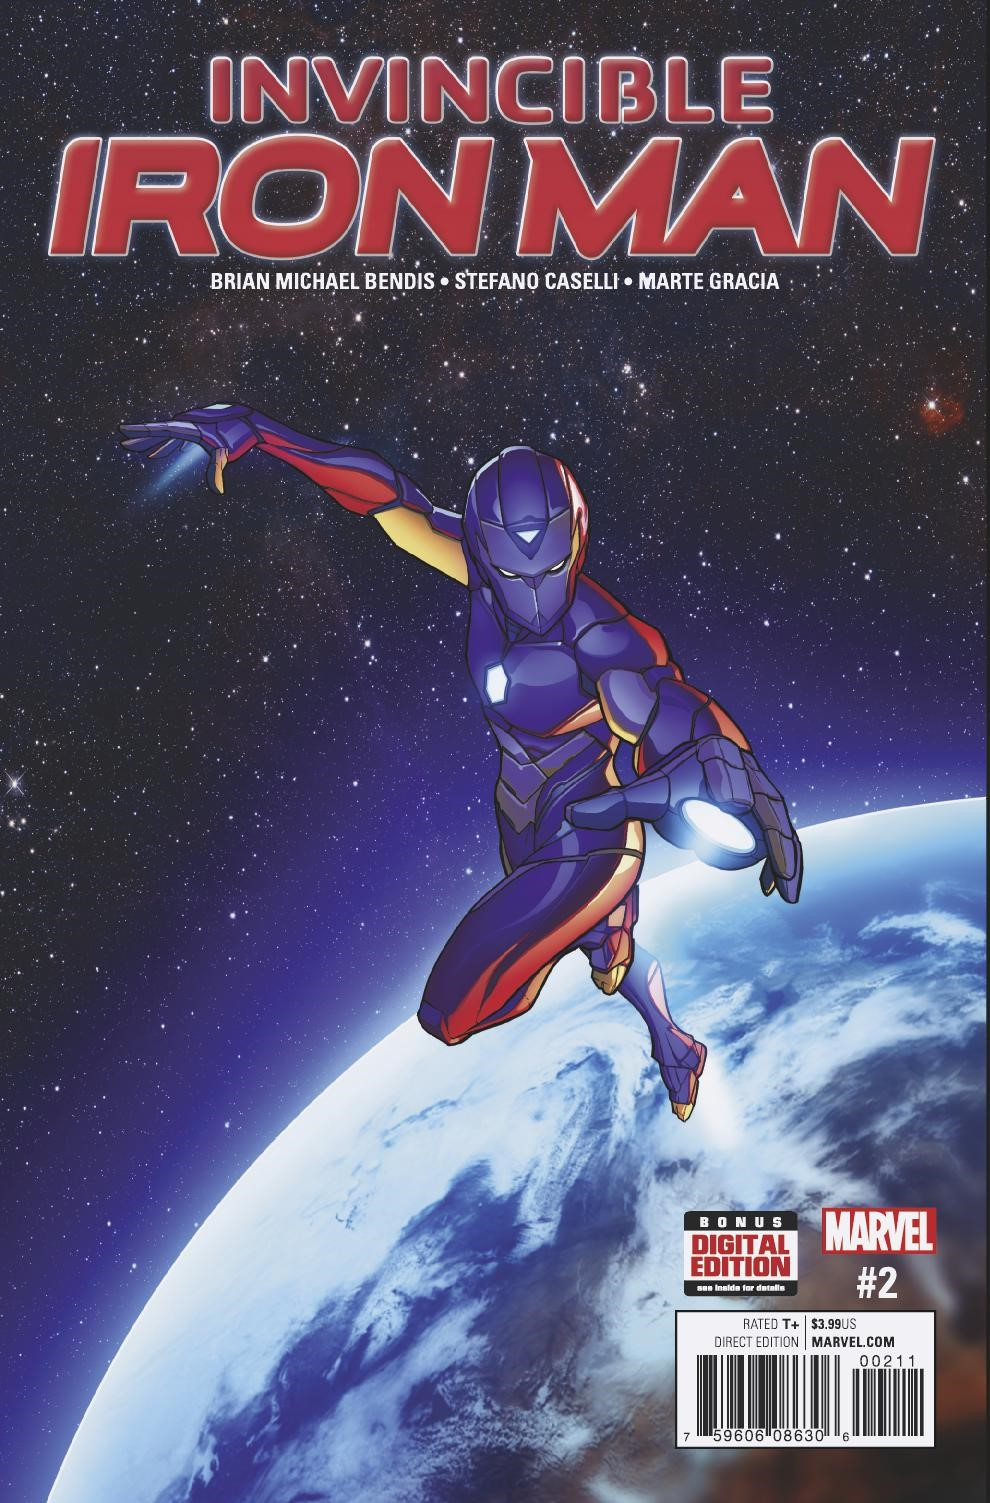 Invincible Iron Man #2 Review: Riri Williams vs. the Iron Mob! Class is in session as AI Tony teaches Riri the finer points of Iron Man-ing!